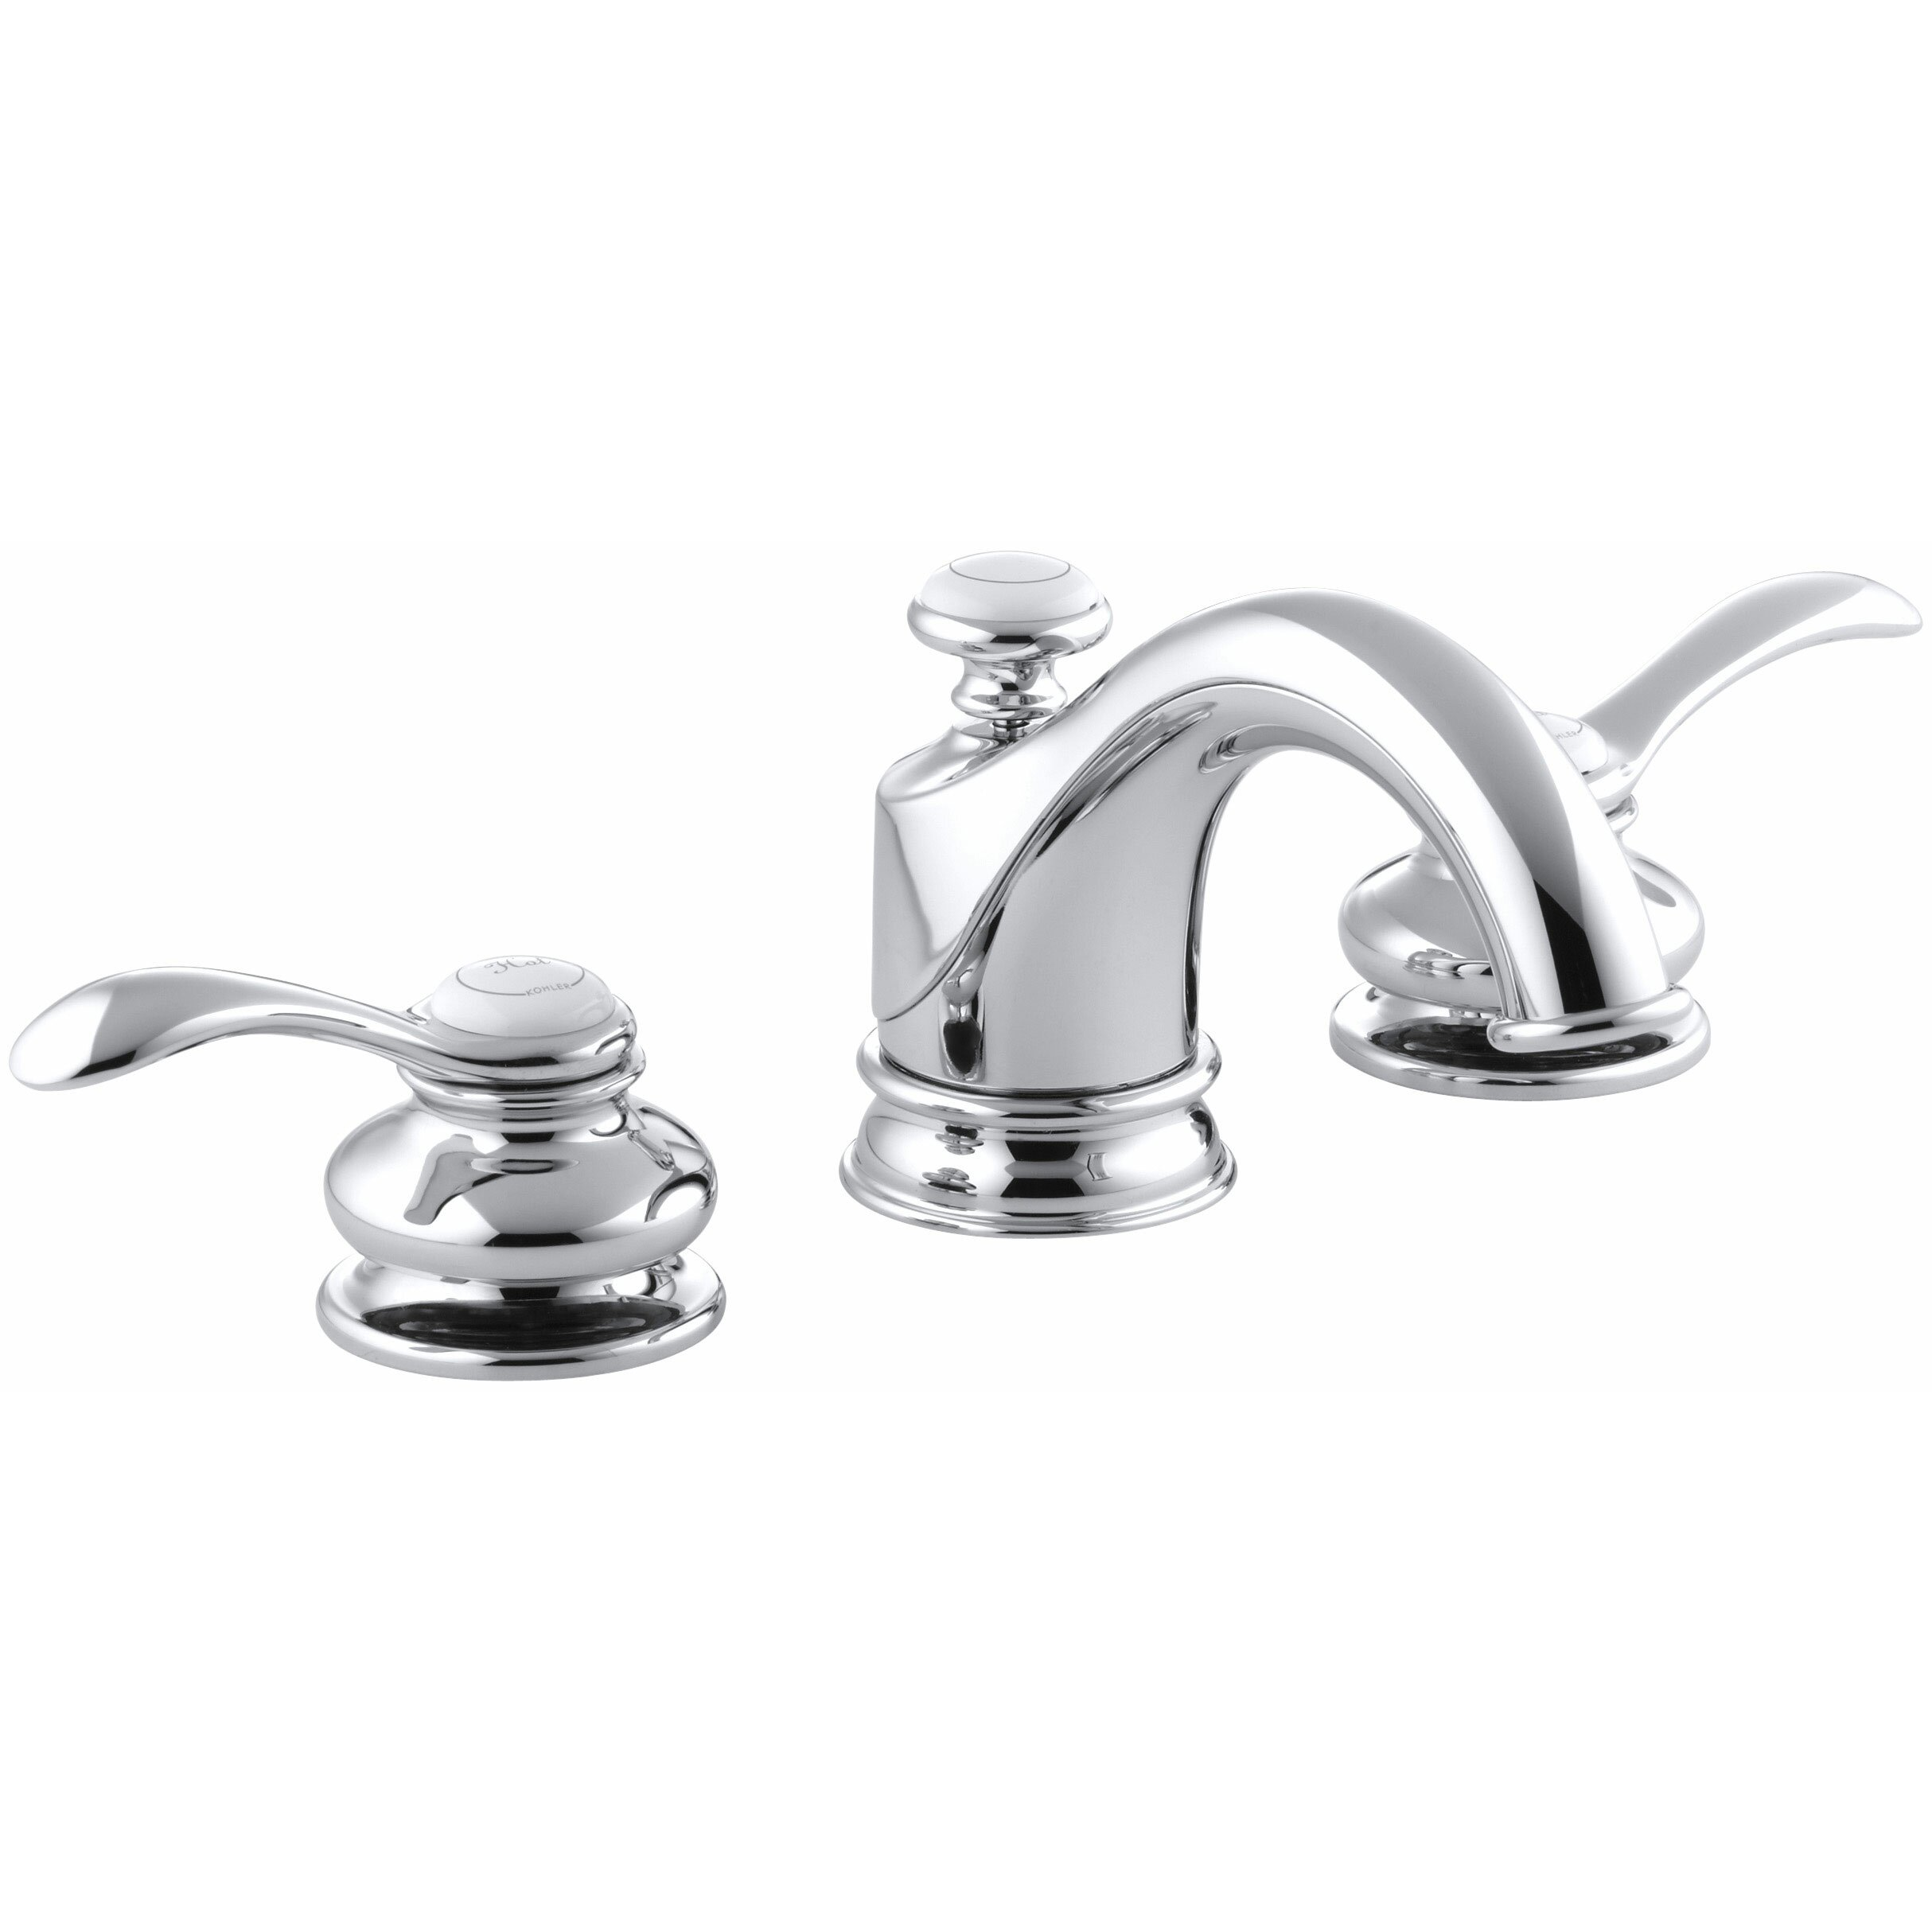 Fairfax Widespread Bathroom Sink Faucet with Lever Handles by Kohler